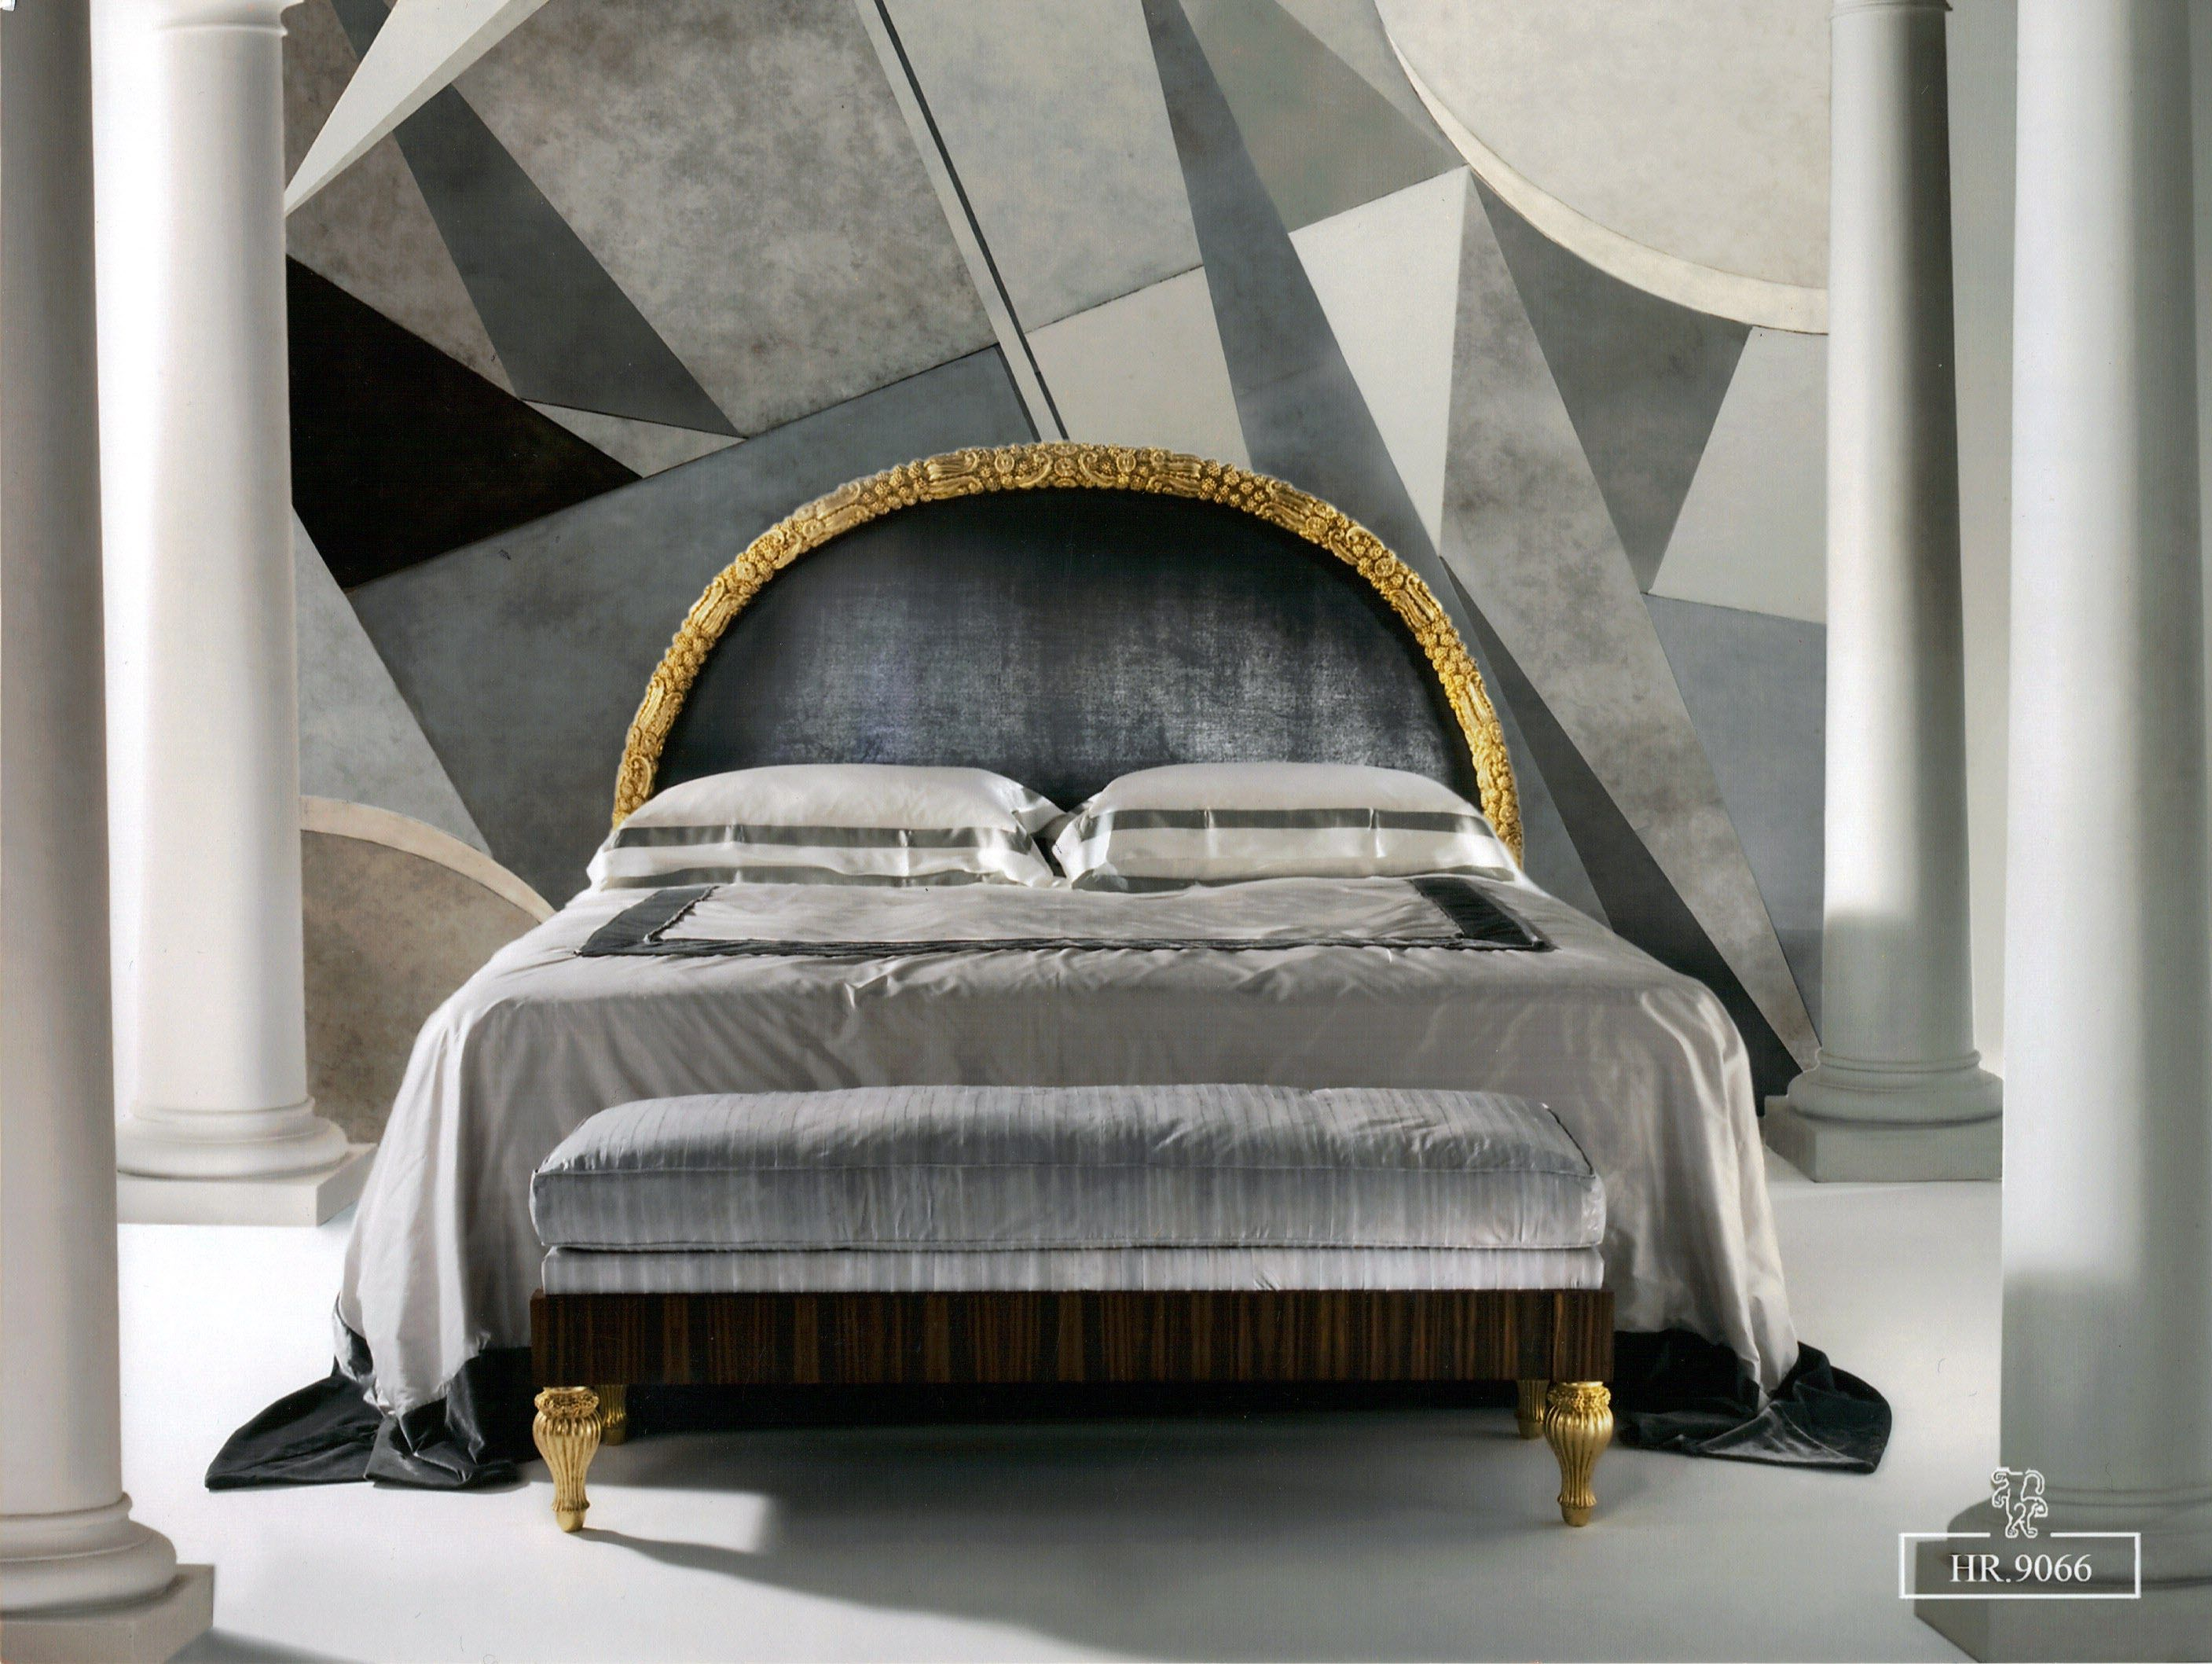 Most Expensive Bed In The World Bed Headboard Design Classic